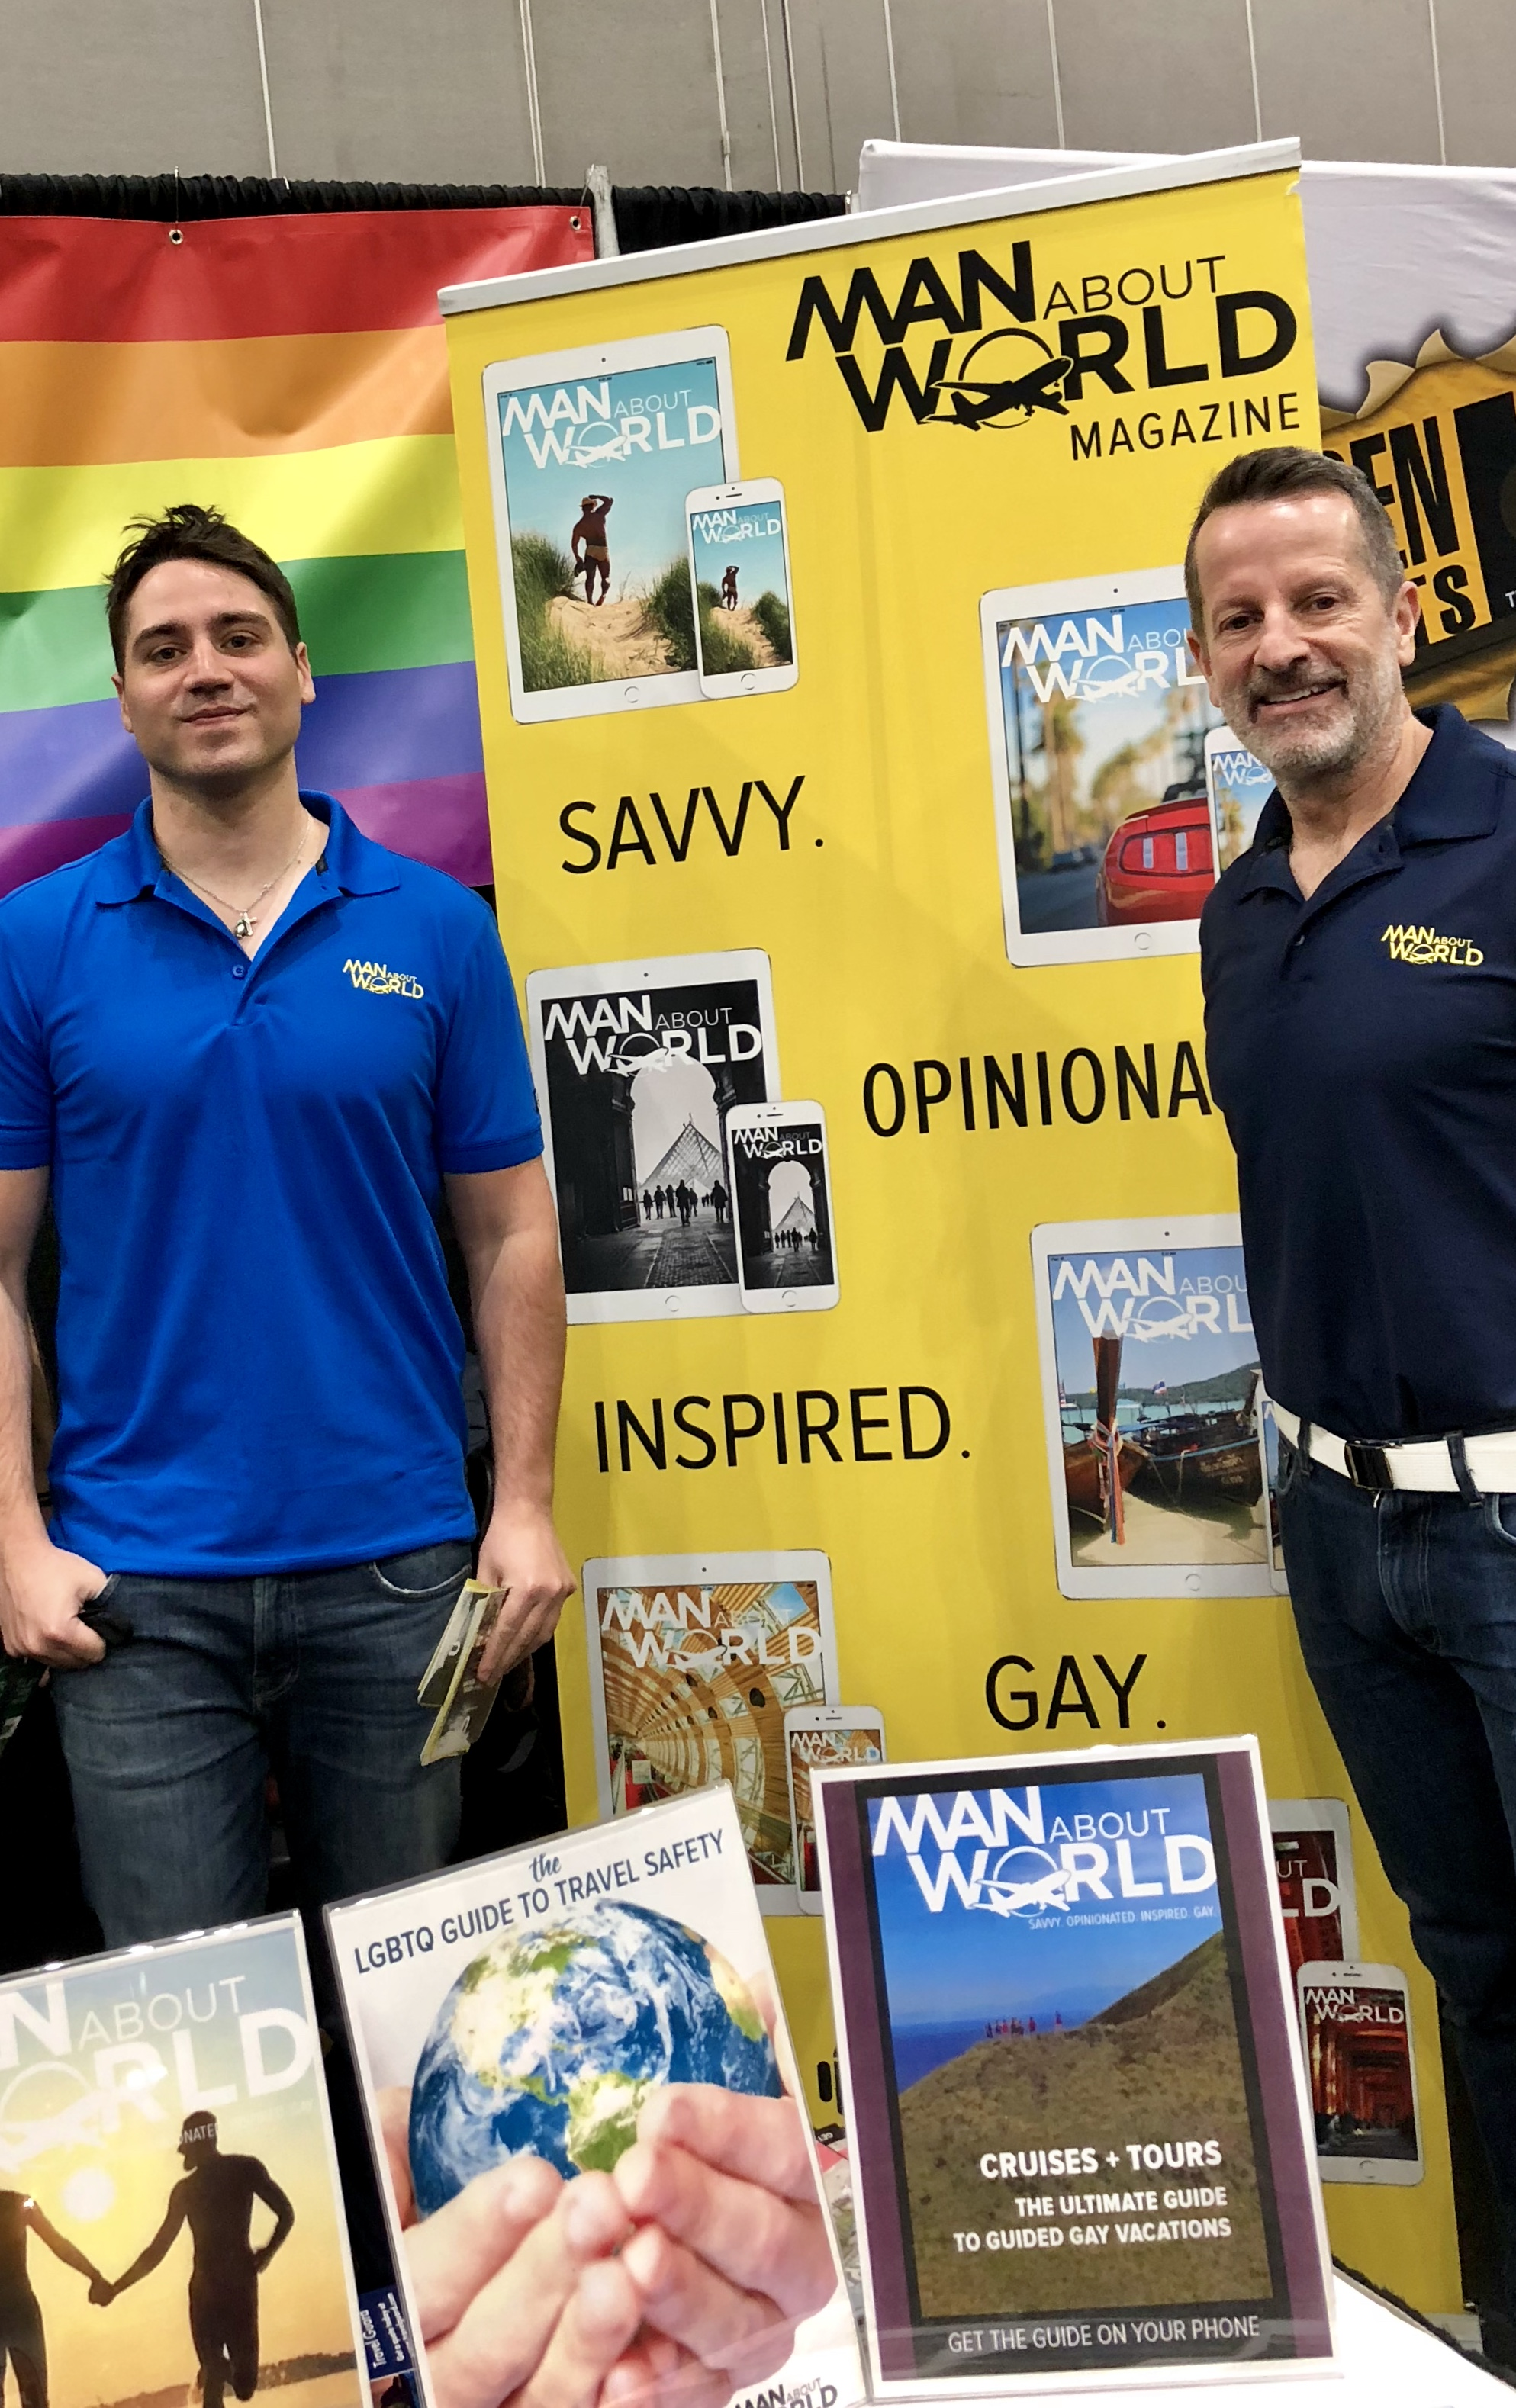 Gay travel experts Ed Salvato and Kenny Porpora at the Travel Show for ManAboutWorld gay travel magazine